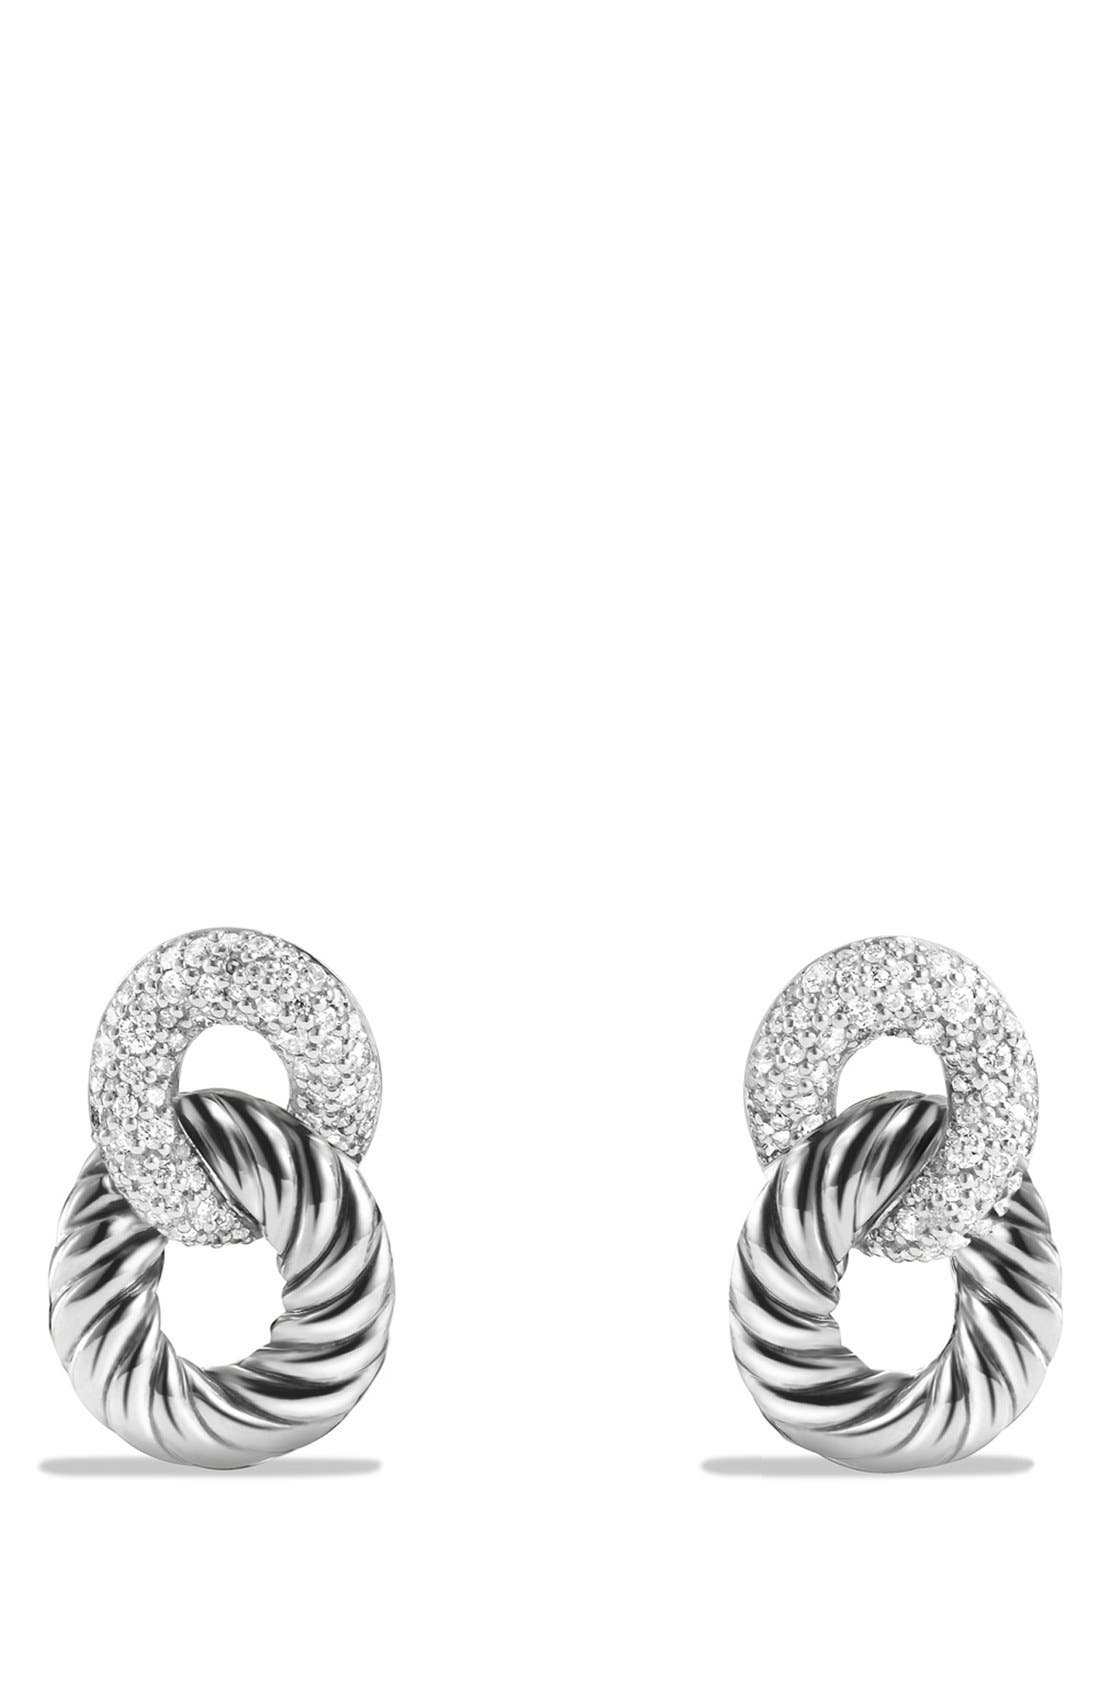 DAVID YURMAN Belmont Curb Link Drop Earrings with Diamonds